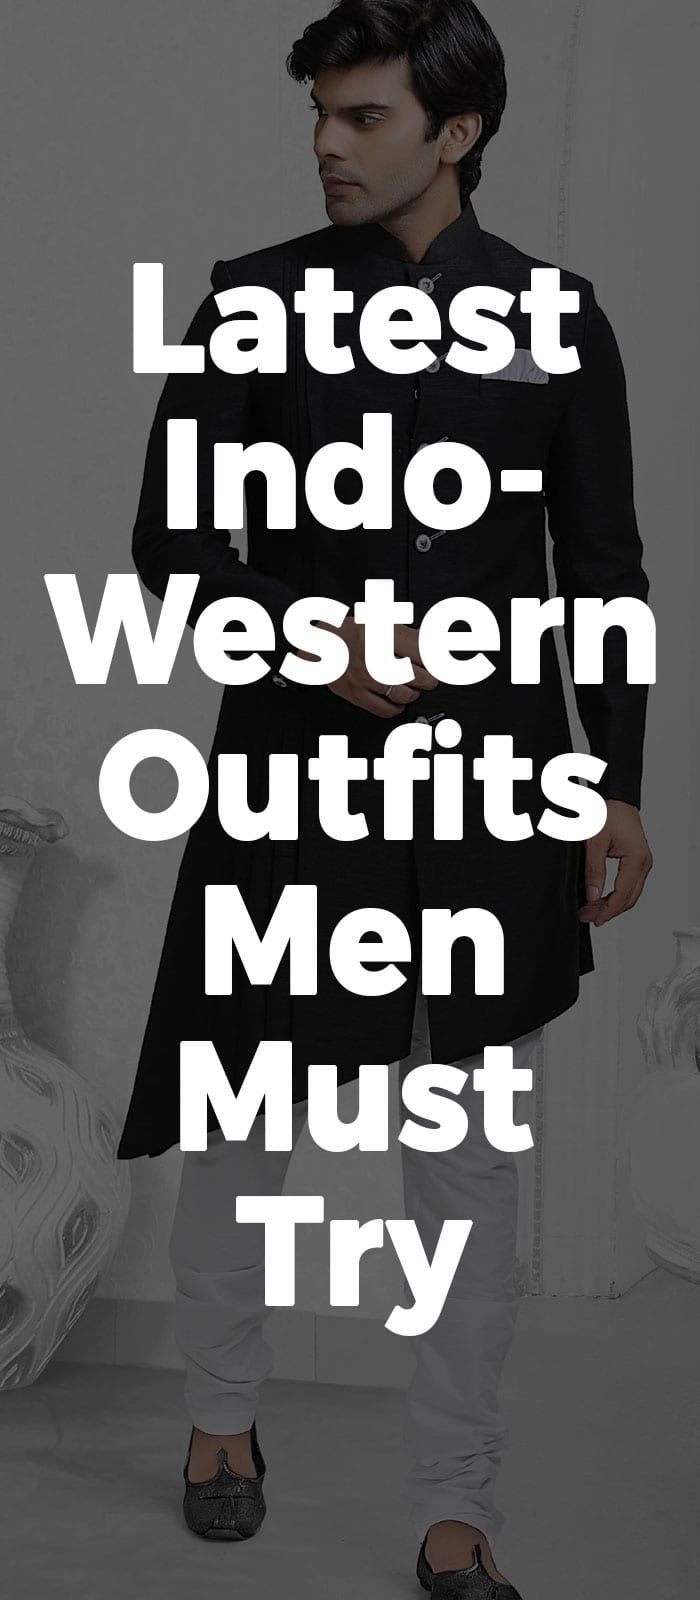 Latest Indo- Western Outfits Men Must Try